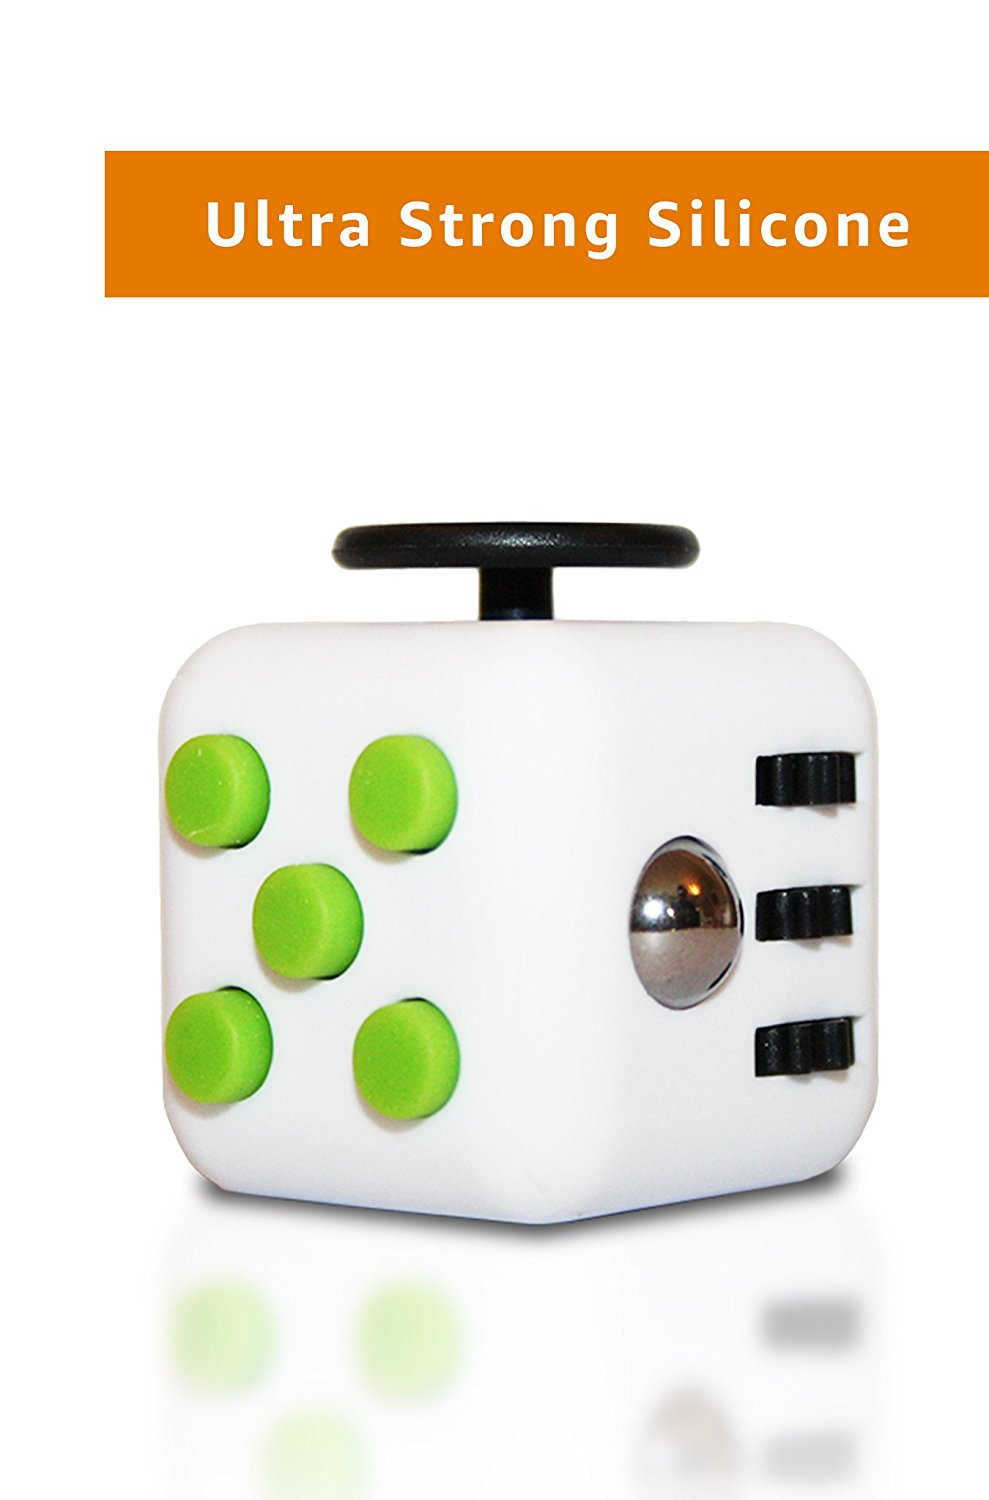 Wedual Fidget Cube [+FREE eBook] Extra Durable Silicone Fidget Dice Toy, Increases Focus - Anti Stress Toy Reliefs Anxiety, ADHD And Boredom -Made for Adults and Children